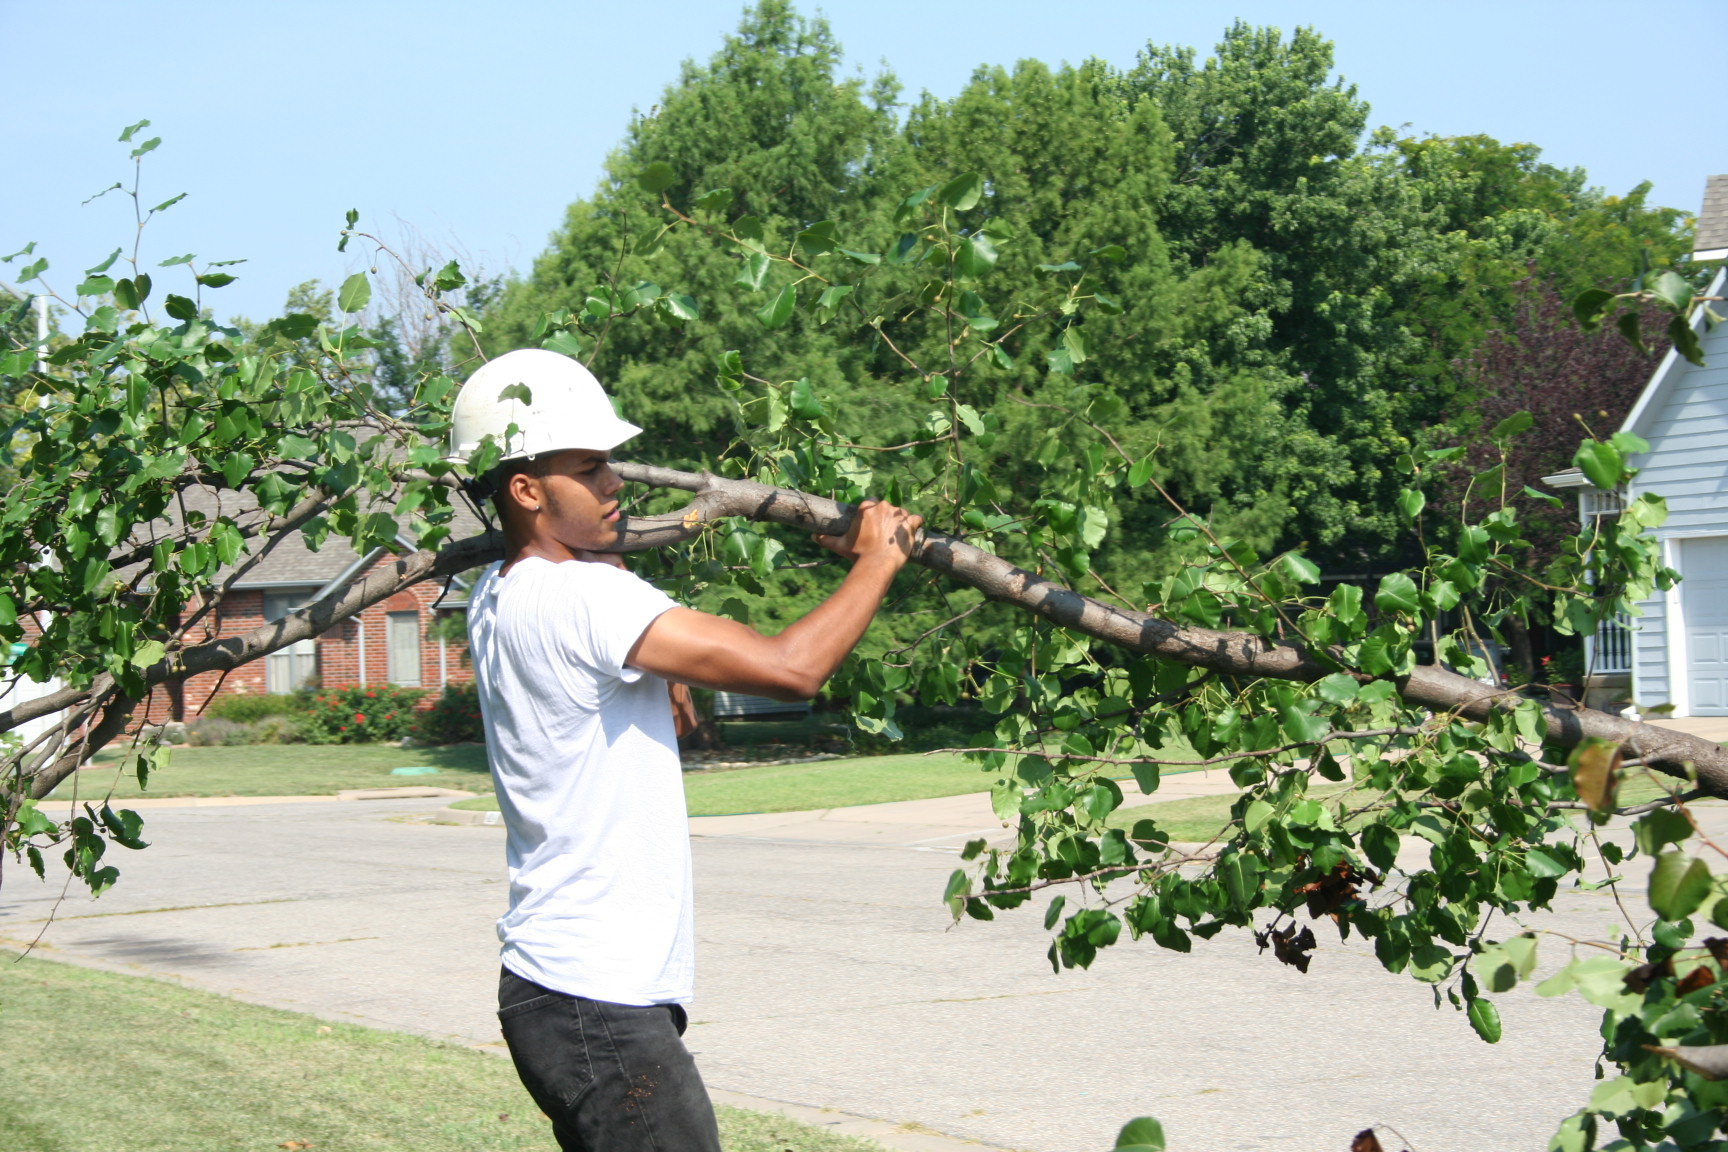 Tree Trimming job in Wichita Kansas done by Wichita Tree Service